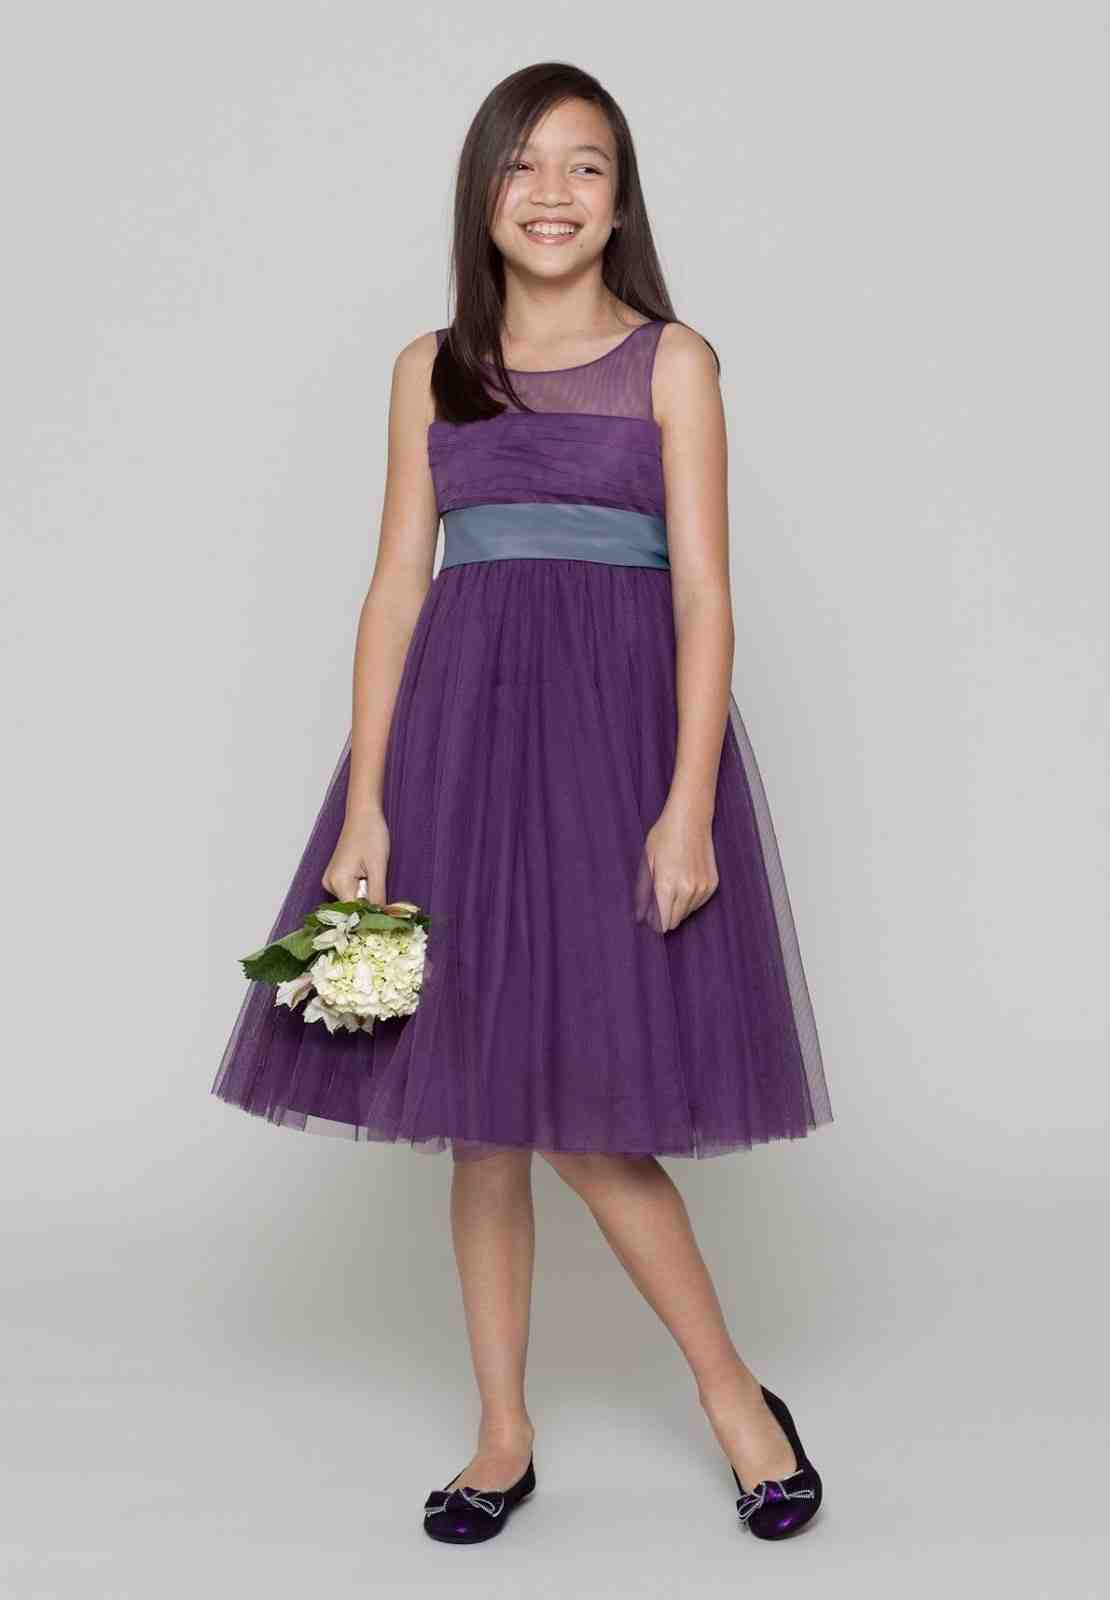 junior bridesmaid dresses 5 tips for buying wedding and